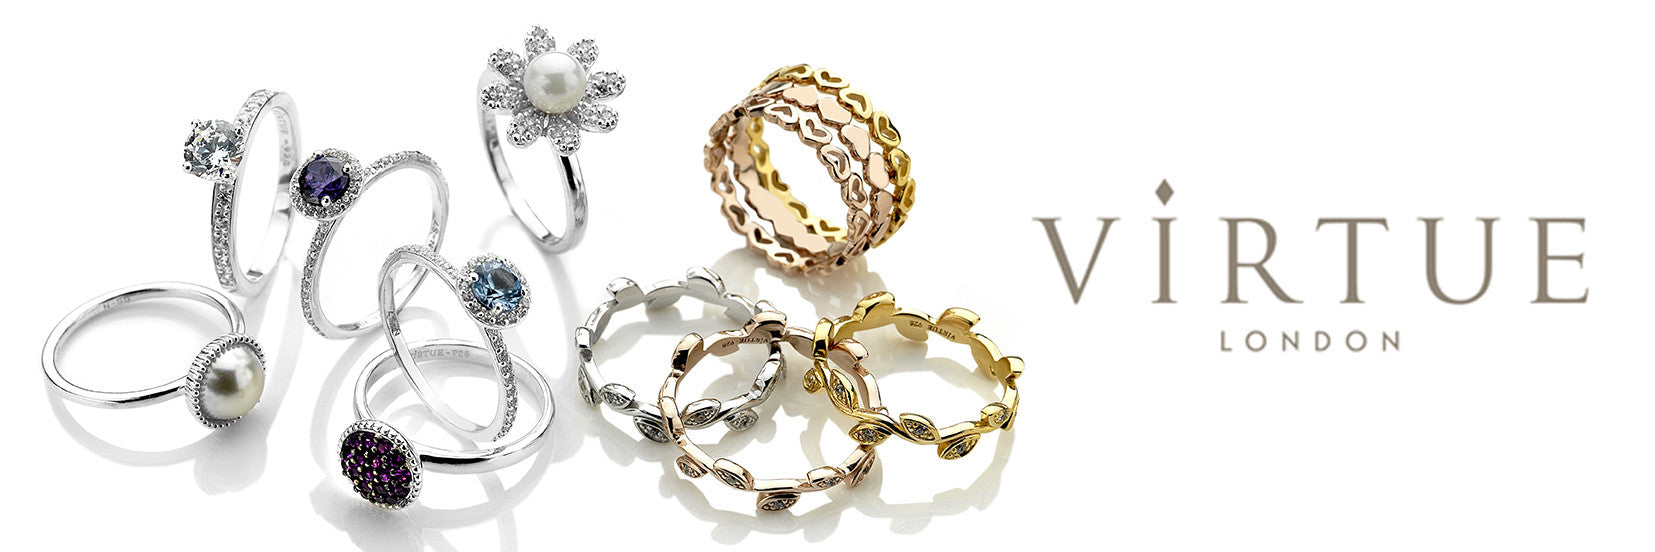 Virtue London Jewellery at Argenteus